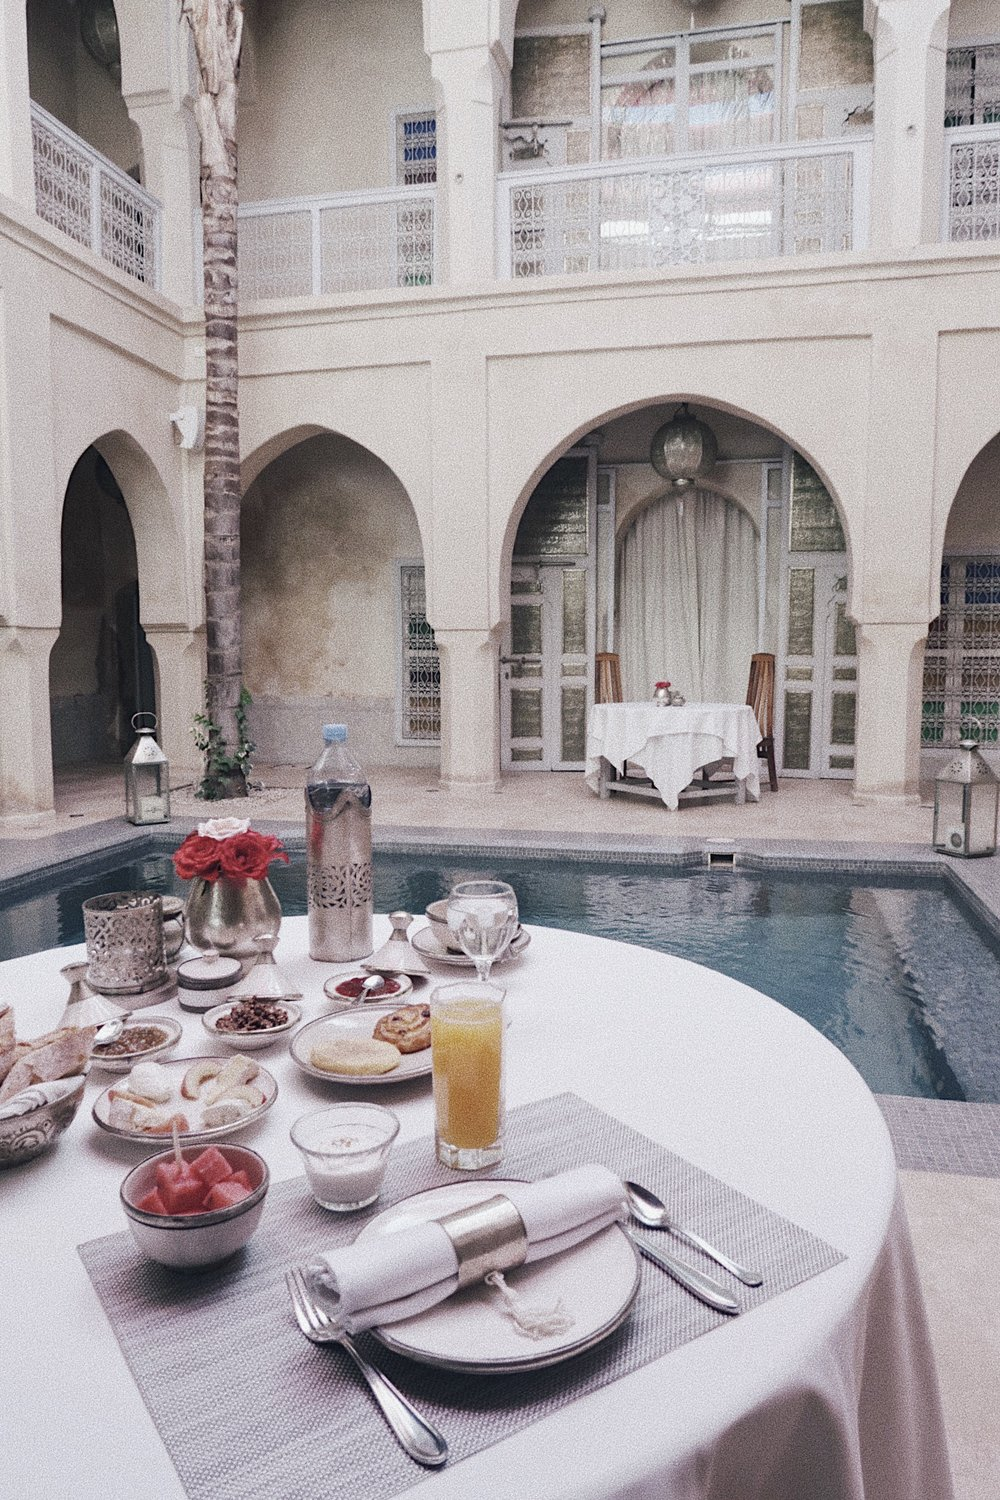 Wake up to a sublime breakfast of Moroccan pancake and exotic fruits or have your breakfast on the rooftop as pictured below